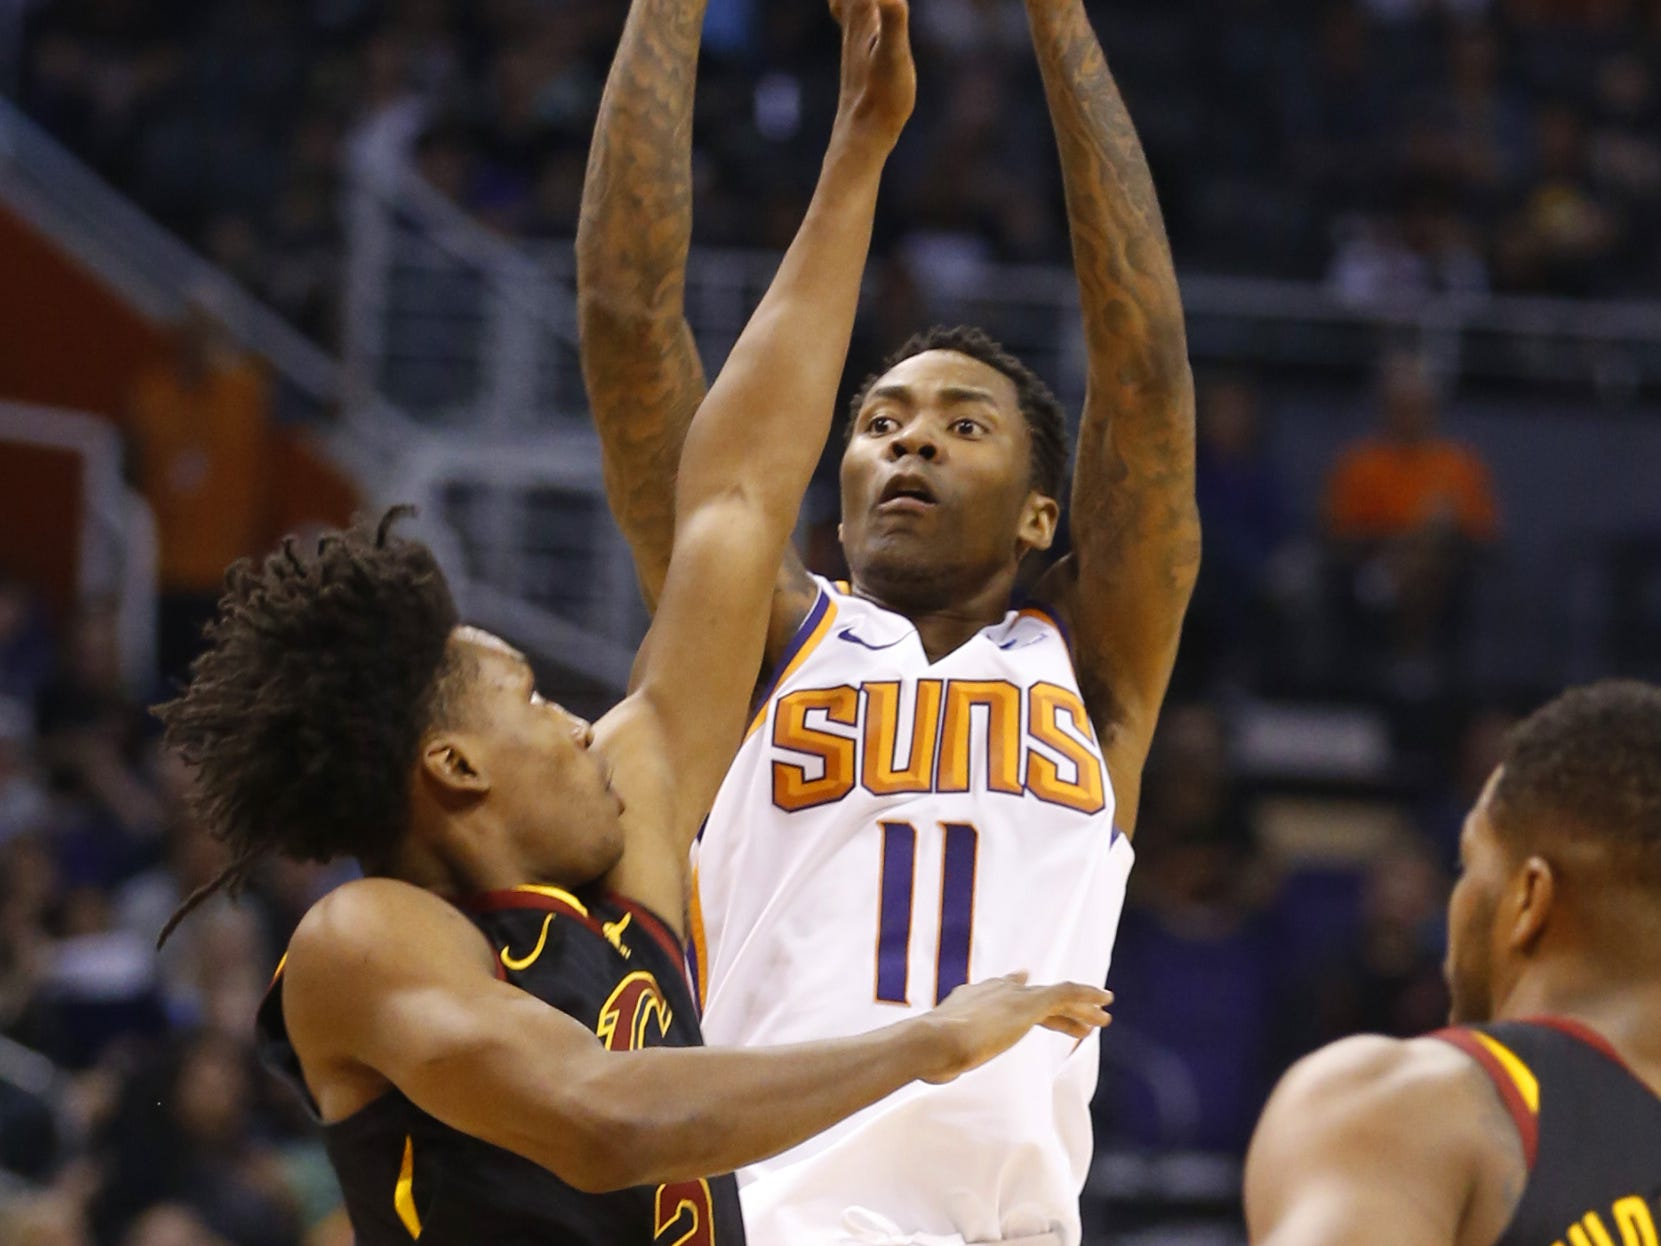 Suns' Jamal Crawford (11) hits a three and draws a foul on Cavaliers' Collin Sexton (2) during the first half at Talking Stick Resort Arena in Phoenix, Ariz. on April 1, 2019.